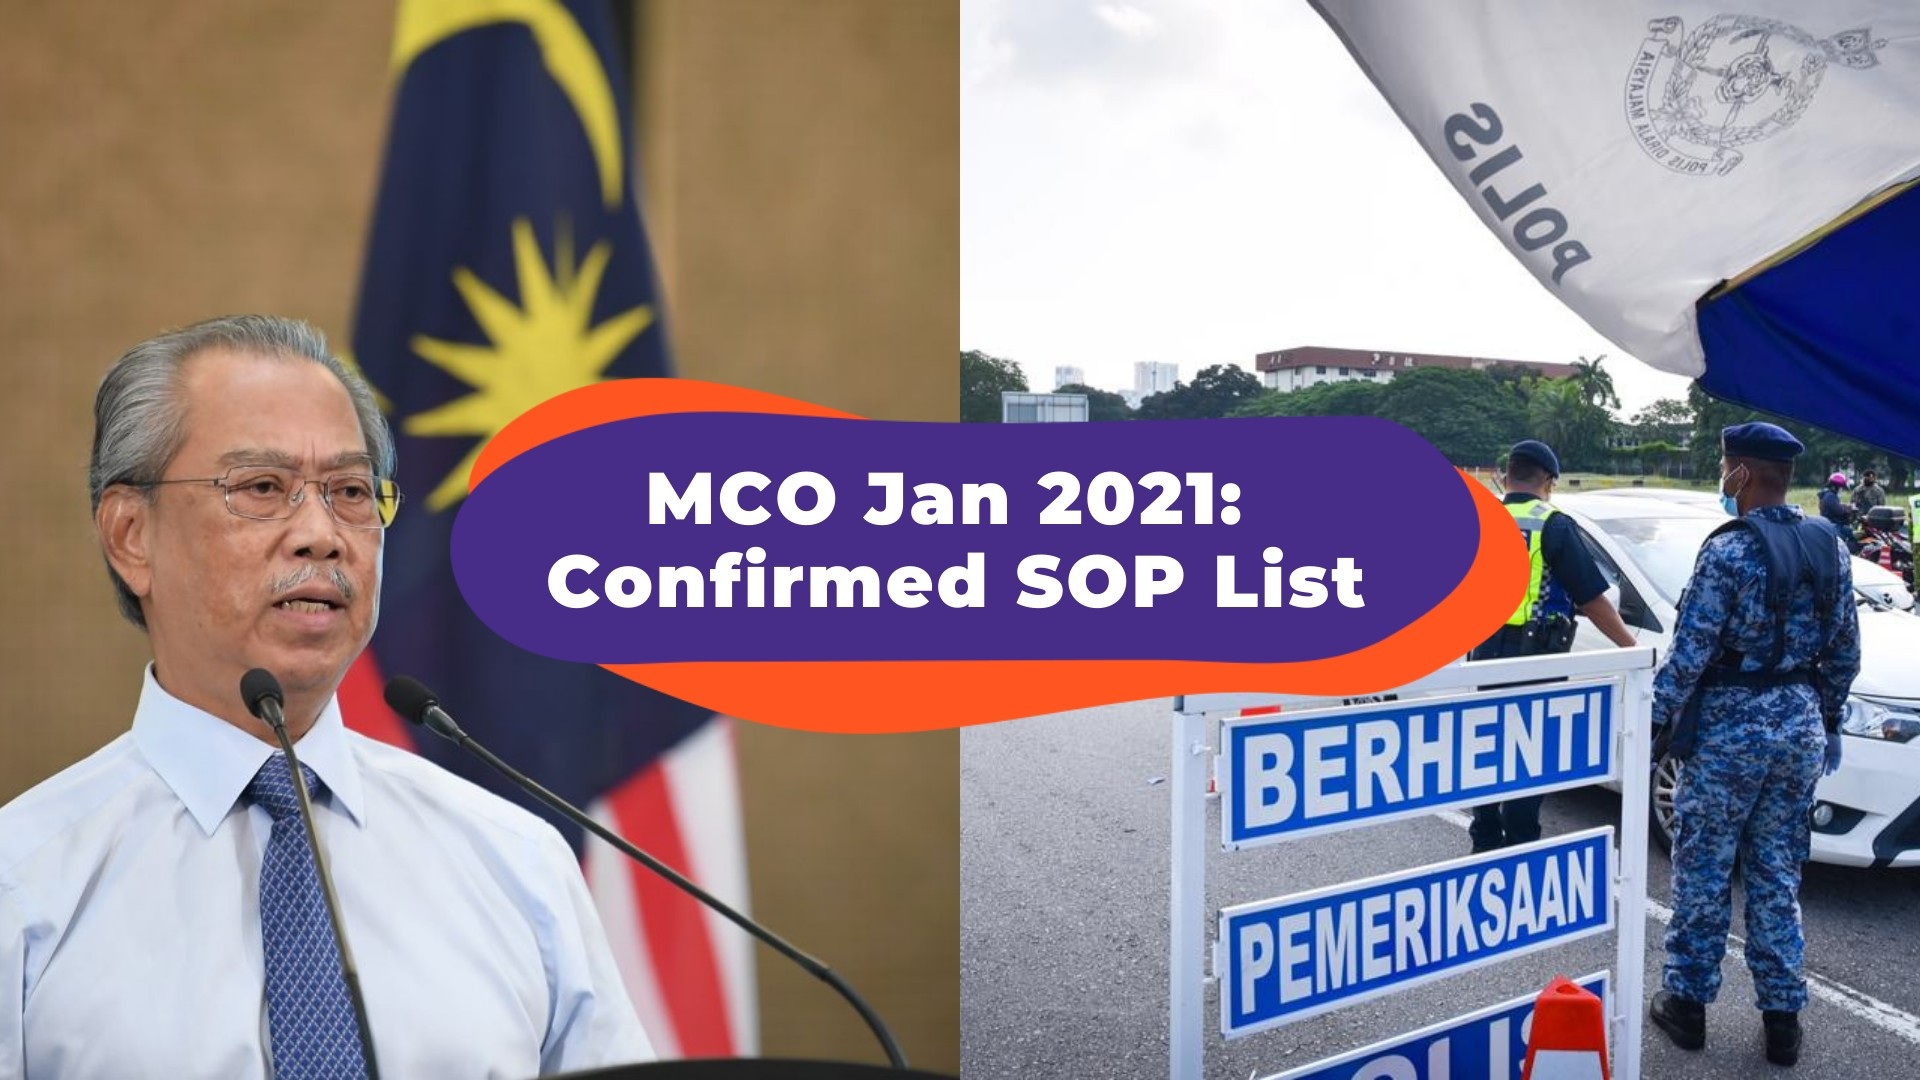 Mco 2 0 Announced For 6 States In Malaysia From 13 Jan 2021 Full List Of Confirmed Sop Klook Travel Blog